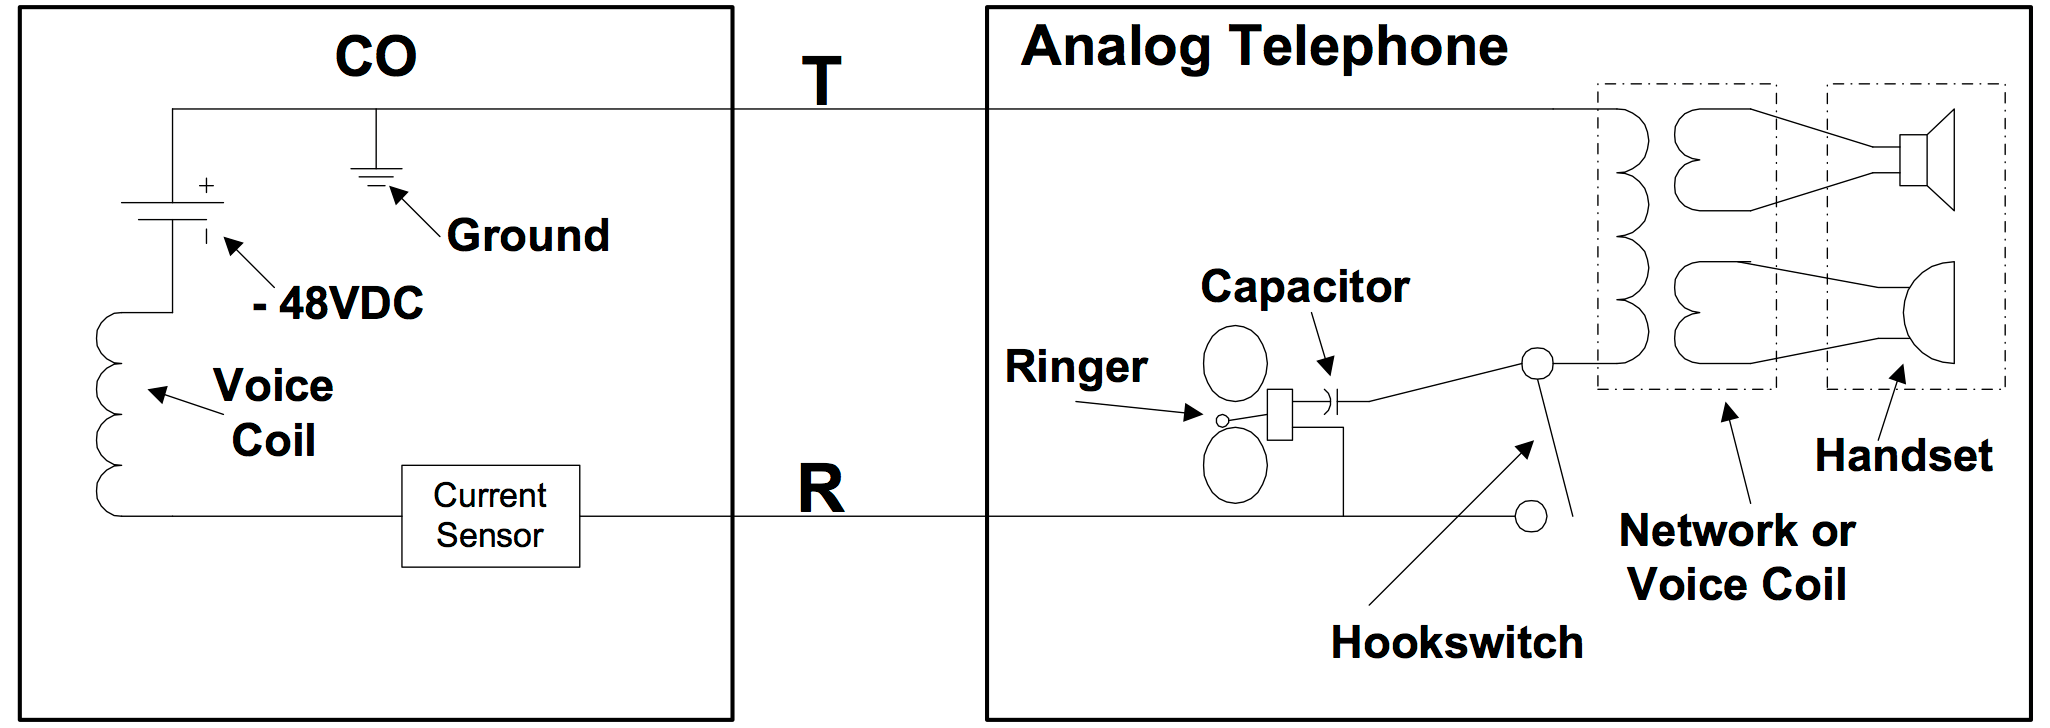 fig 5 all about analog lines Residential Telephone Wiring Diagram at gsmx.co